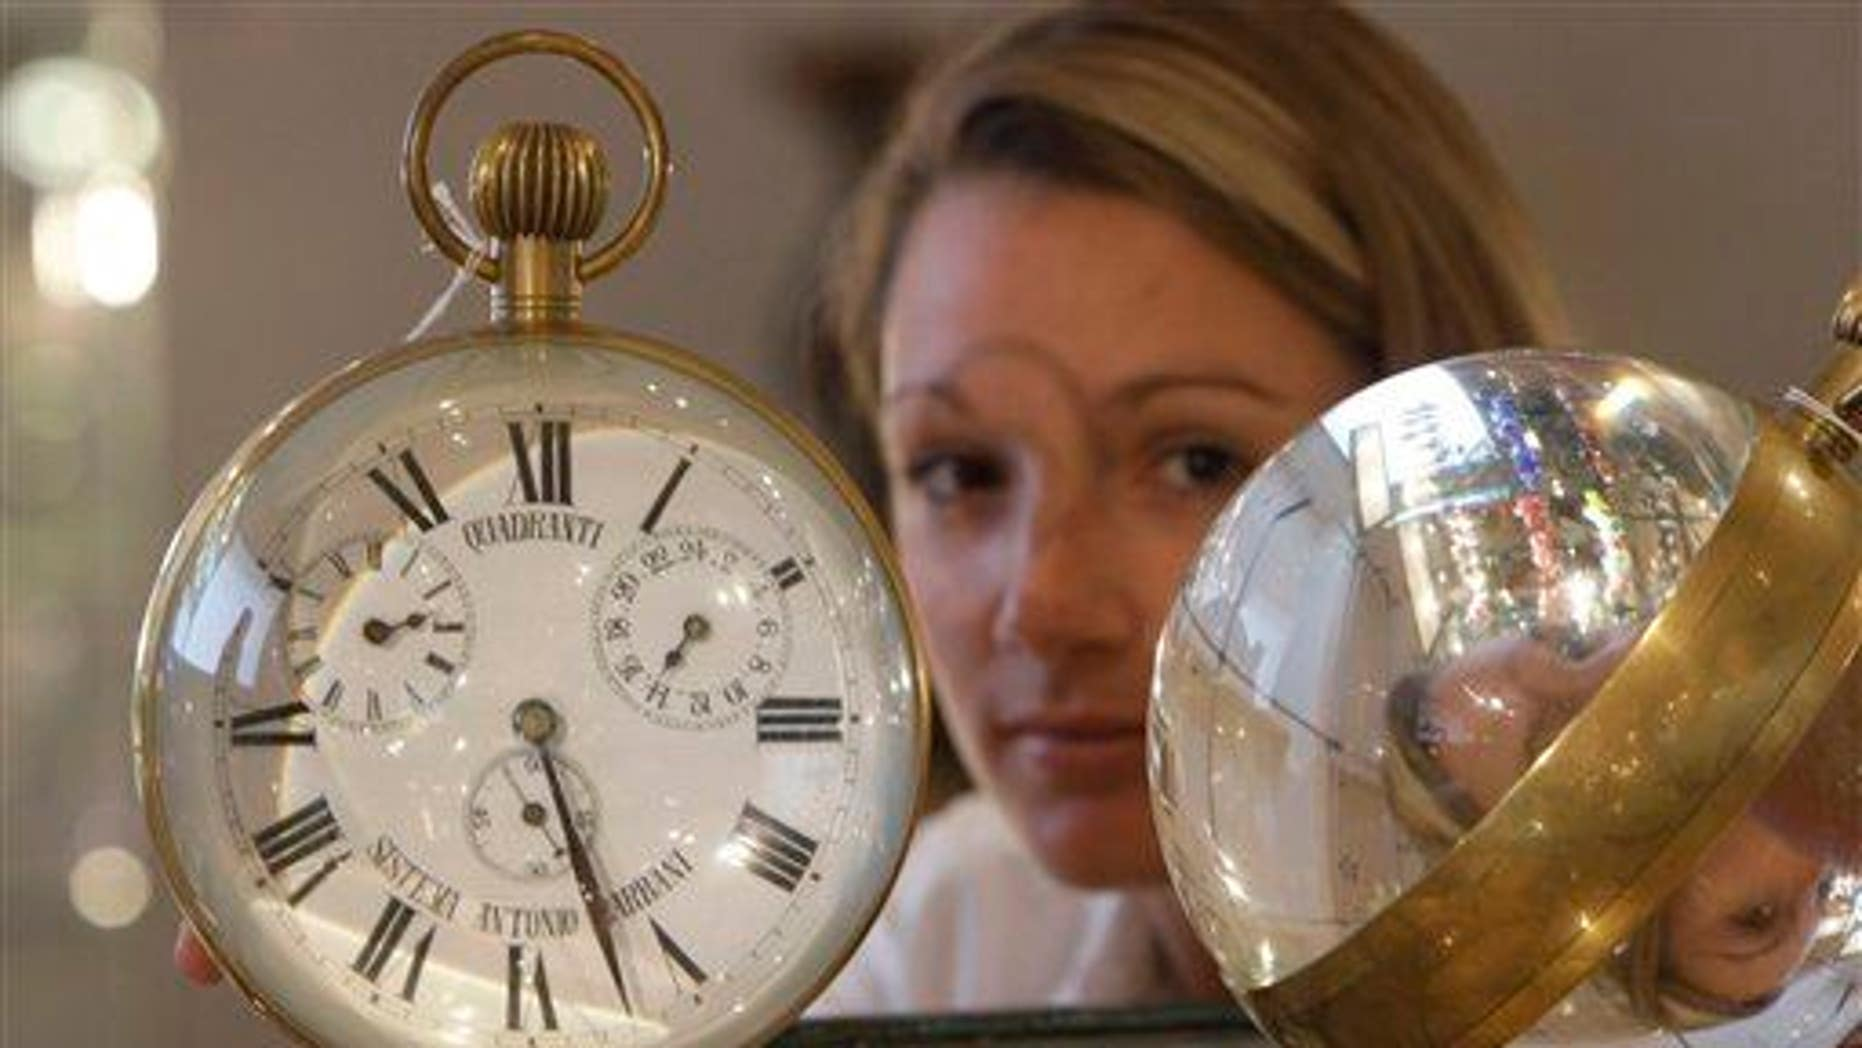 A Bonhams employee holds two Victorian glass and brass bull's-eye desktop clocks on view at Bonhams auction house in London, Monday, Sept. 28, 2009, in London.